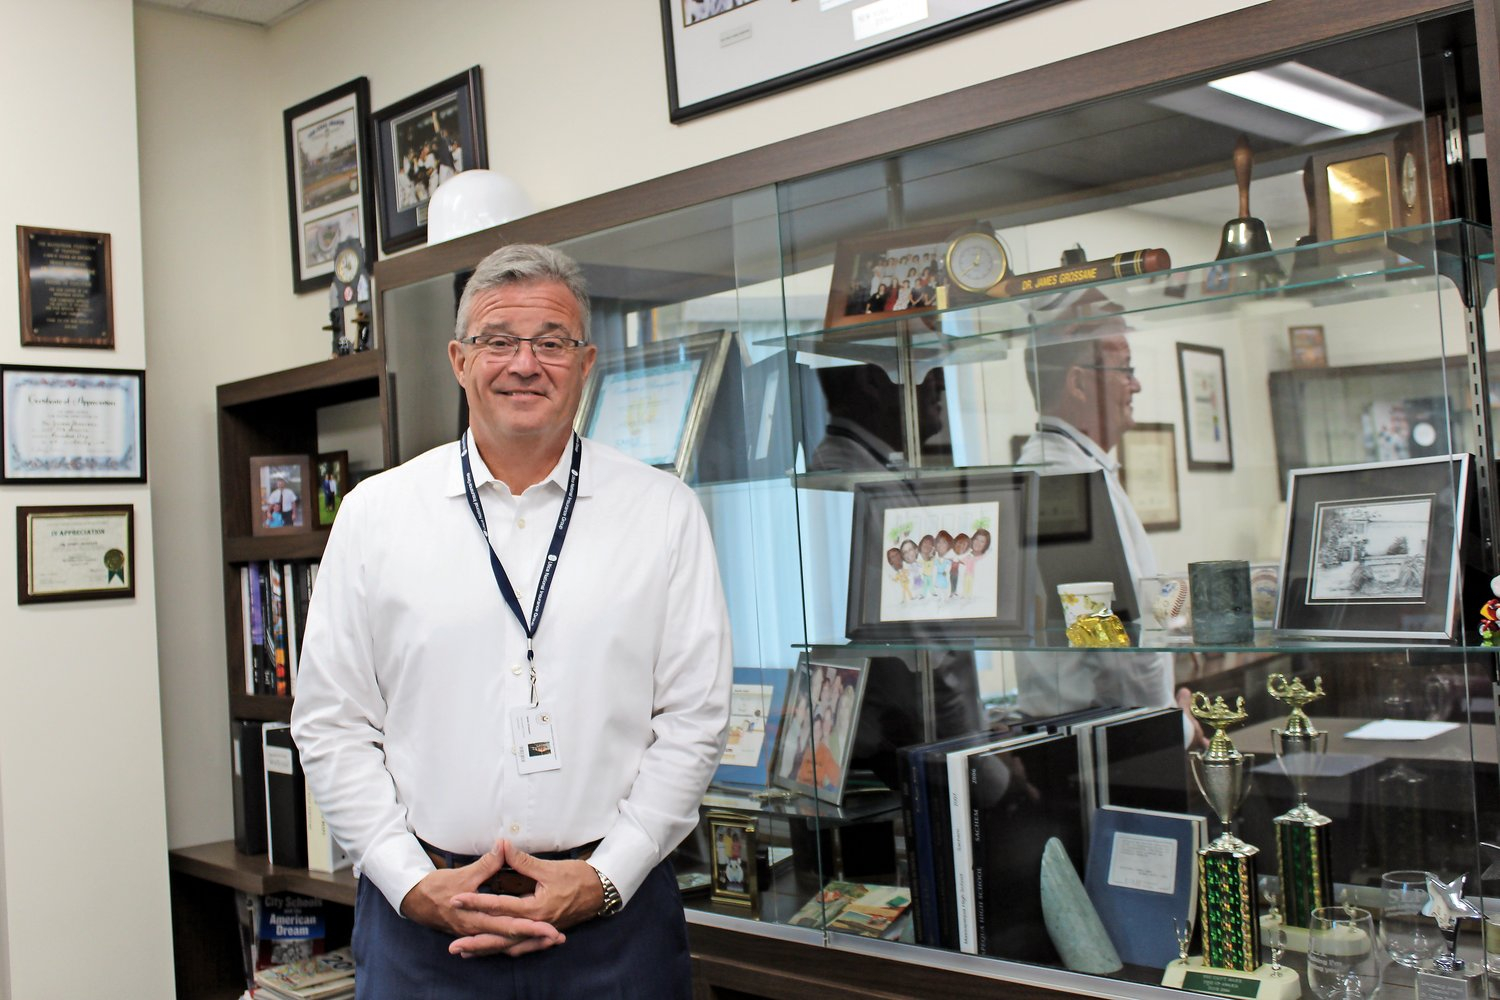 James Grossane took over as the superintendent of the Sewanhaka Central High School District in July, and has since been working to prepare for the start of the school year.